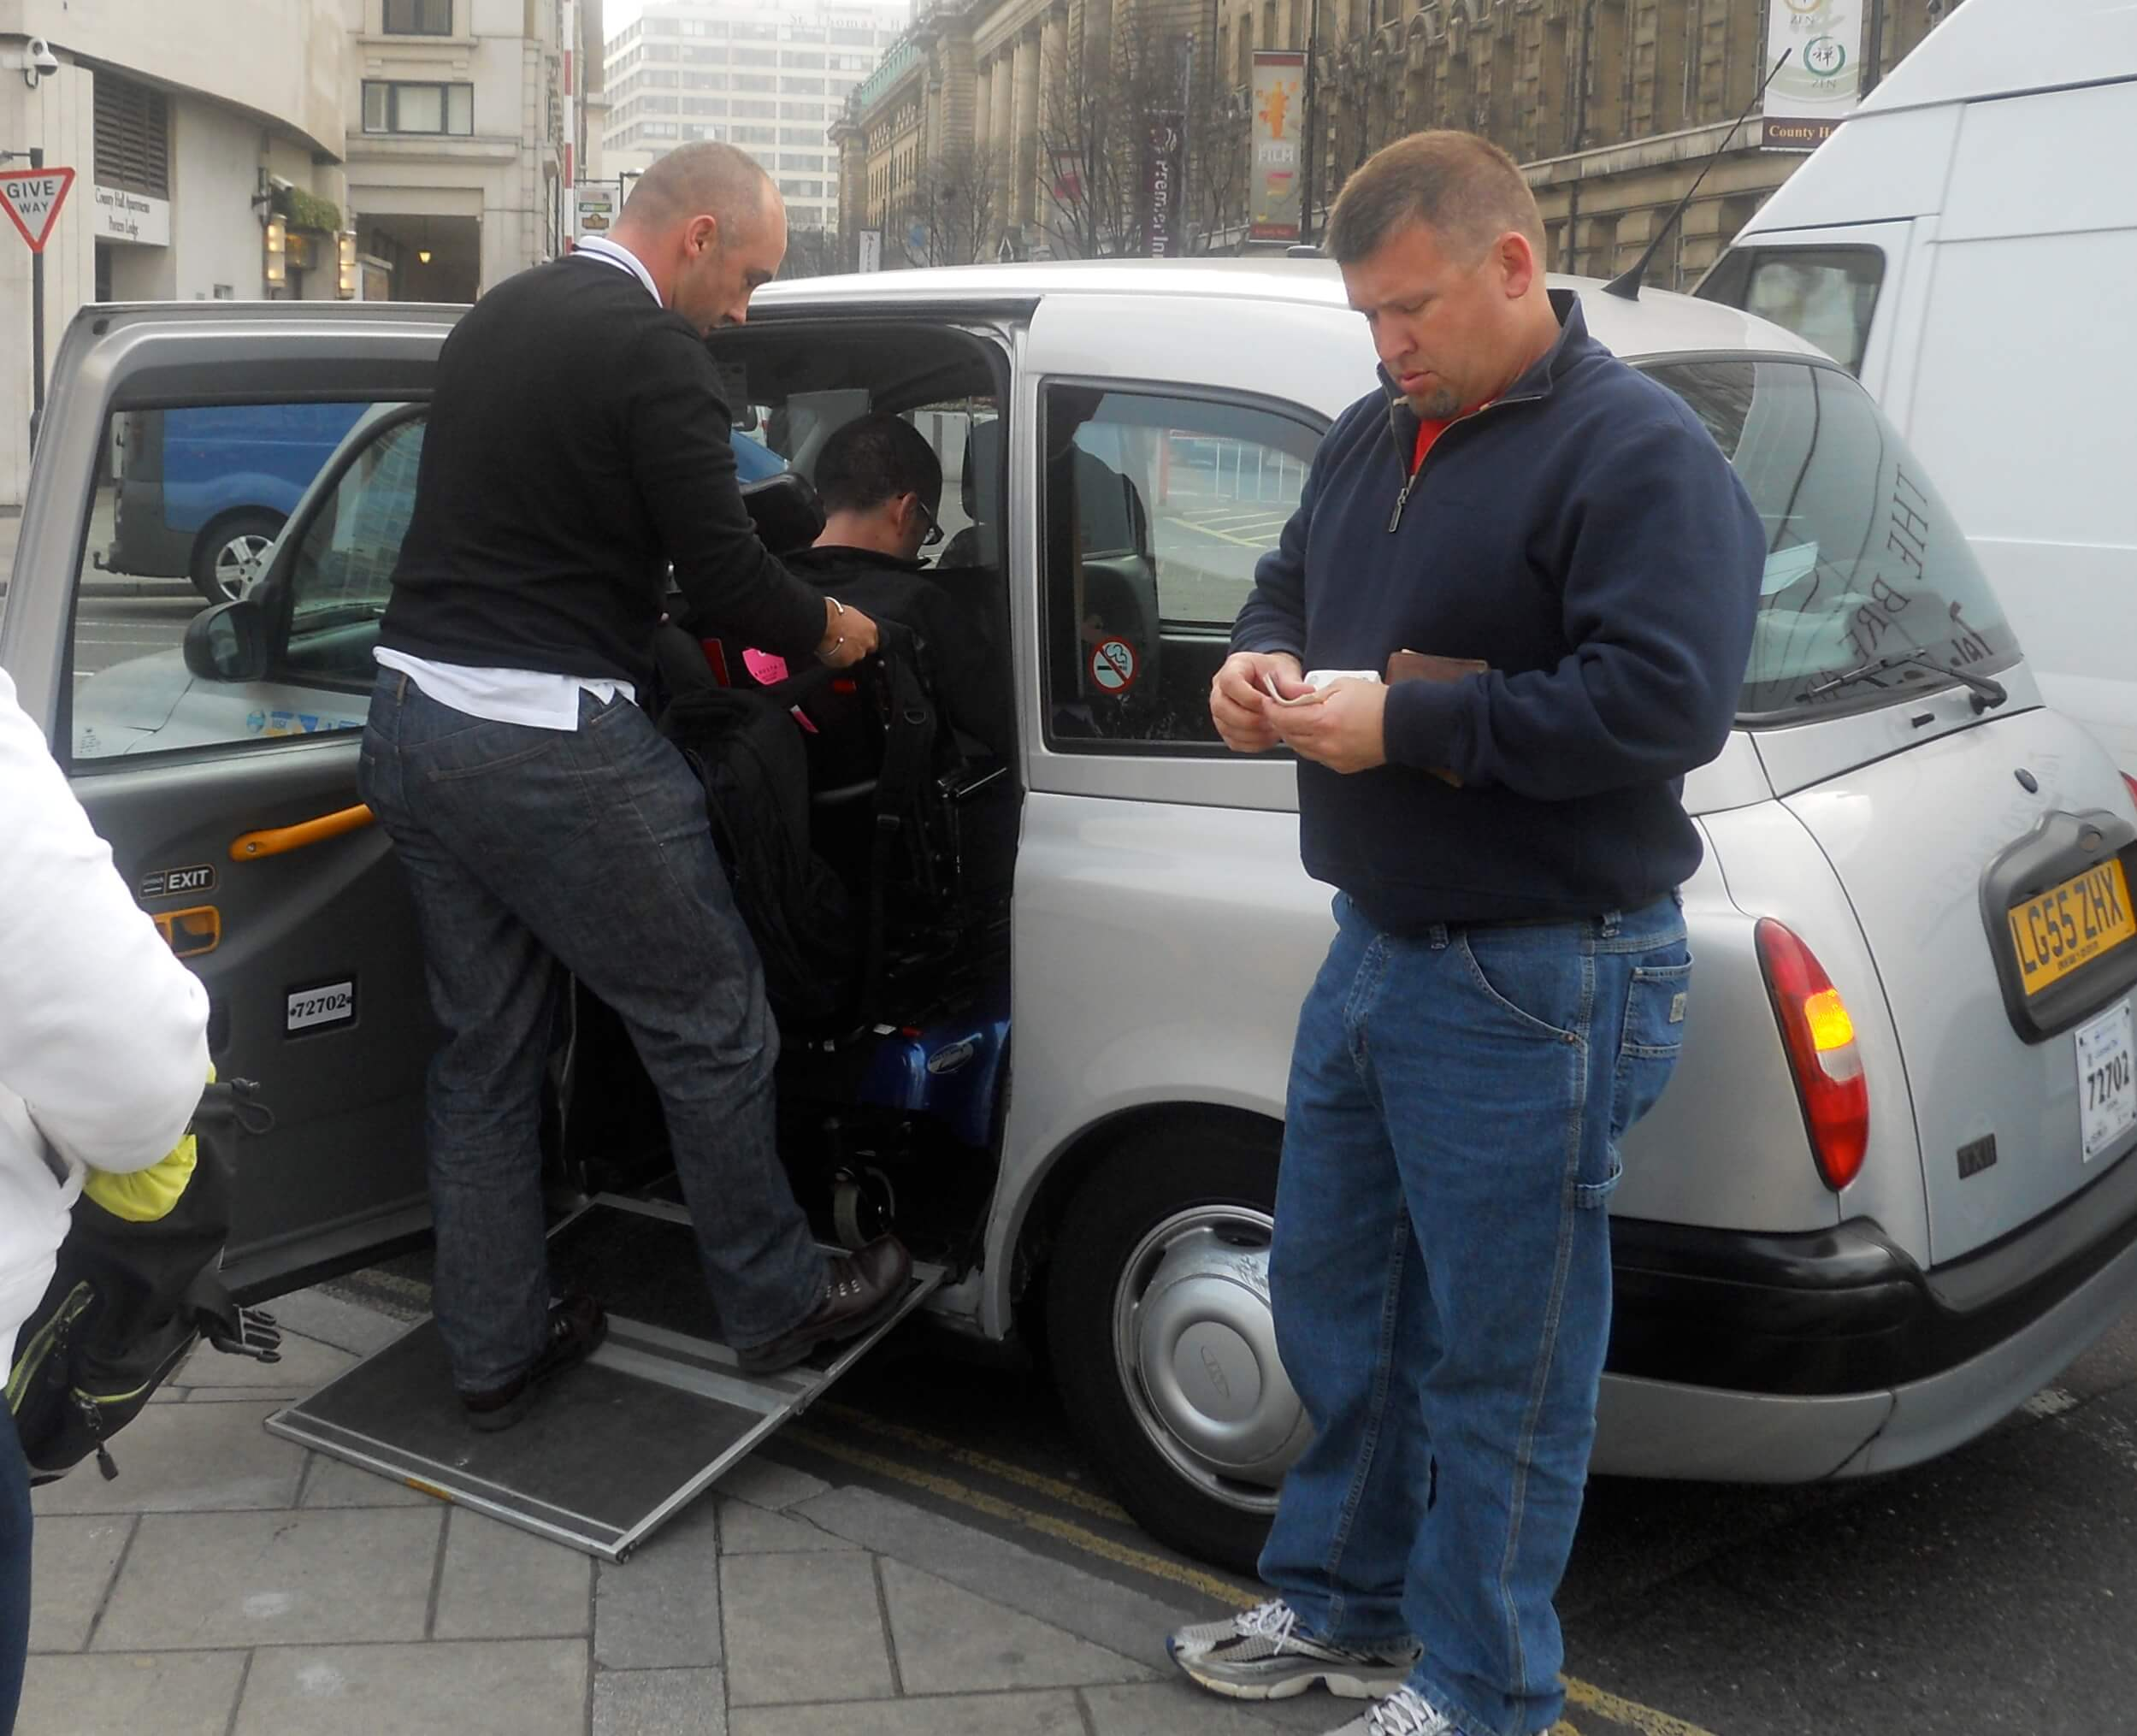 Just one of the many accessible taxis in London